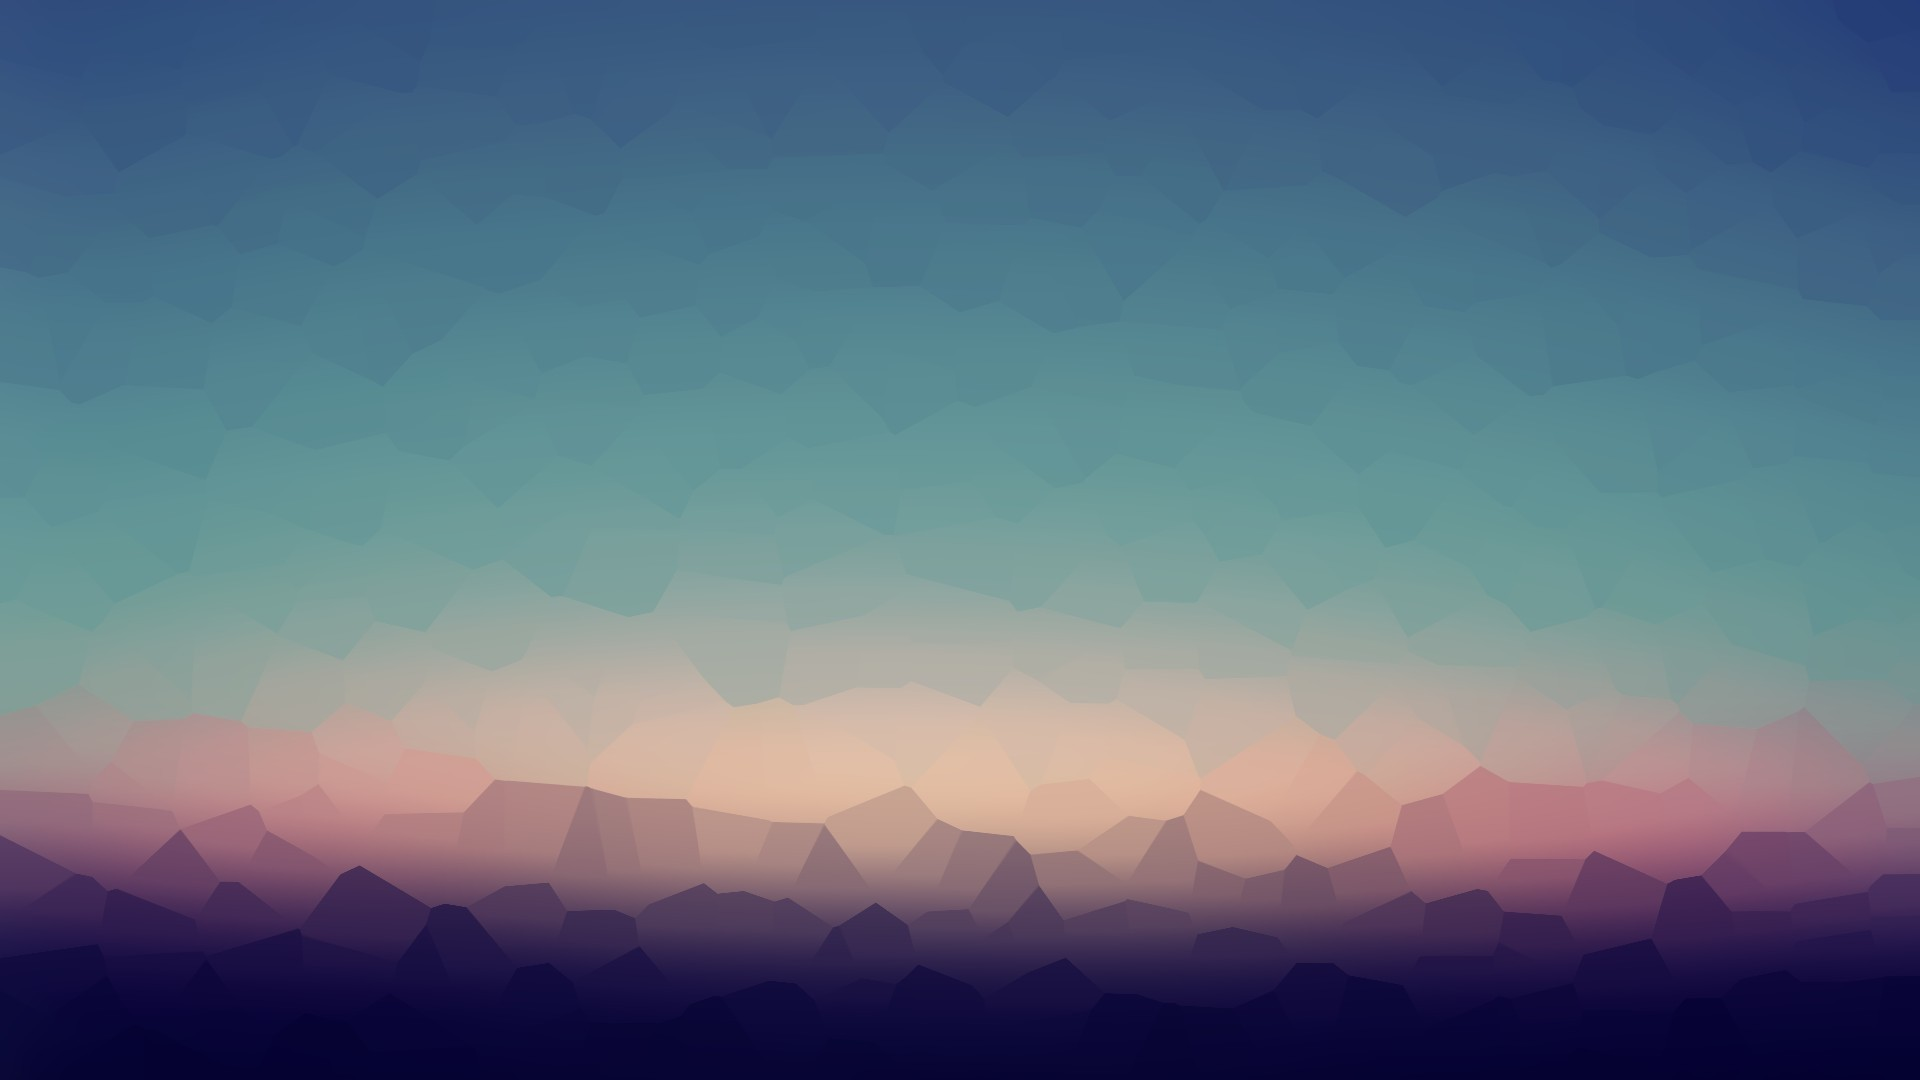 Simple Backgrounds 78 Images